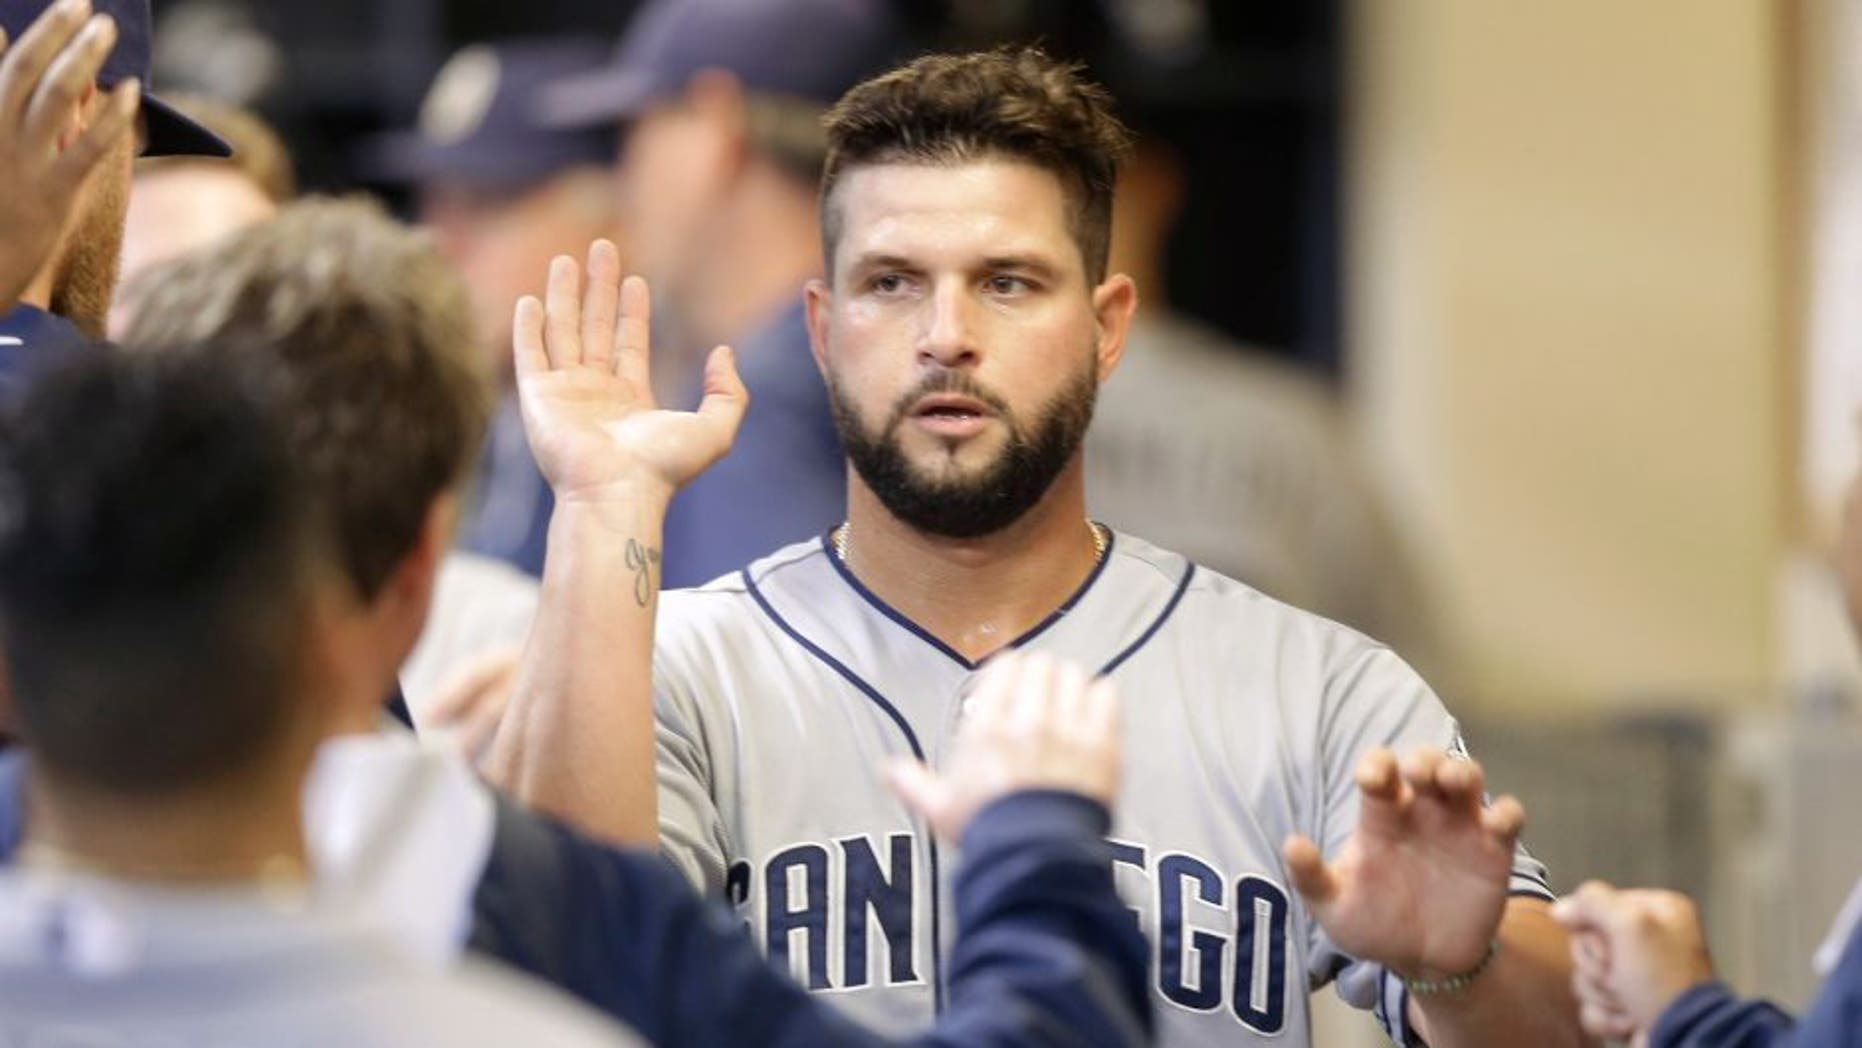 MILWAUKEE, WI - AUGUST 05: Yonder Alonso #23 of the San Diego Padres celebrates after reach home plate on a RBI single hit by Will Venable in the seventh inning against the Milwaukee Brewers at Miller Park on August 05, 2015 in Milwaukee, Wisconsin. (Photo by Mike McGinnis/Getty Images)